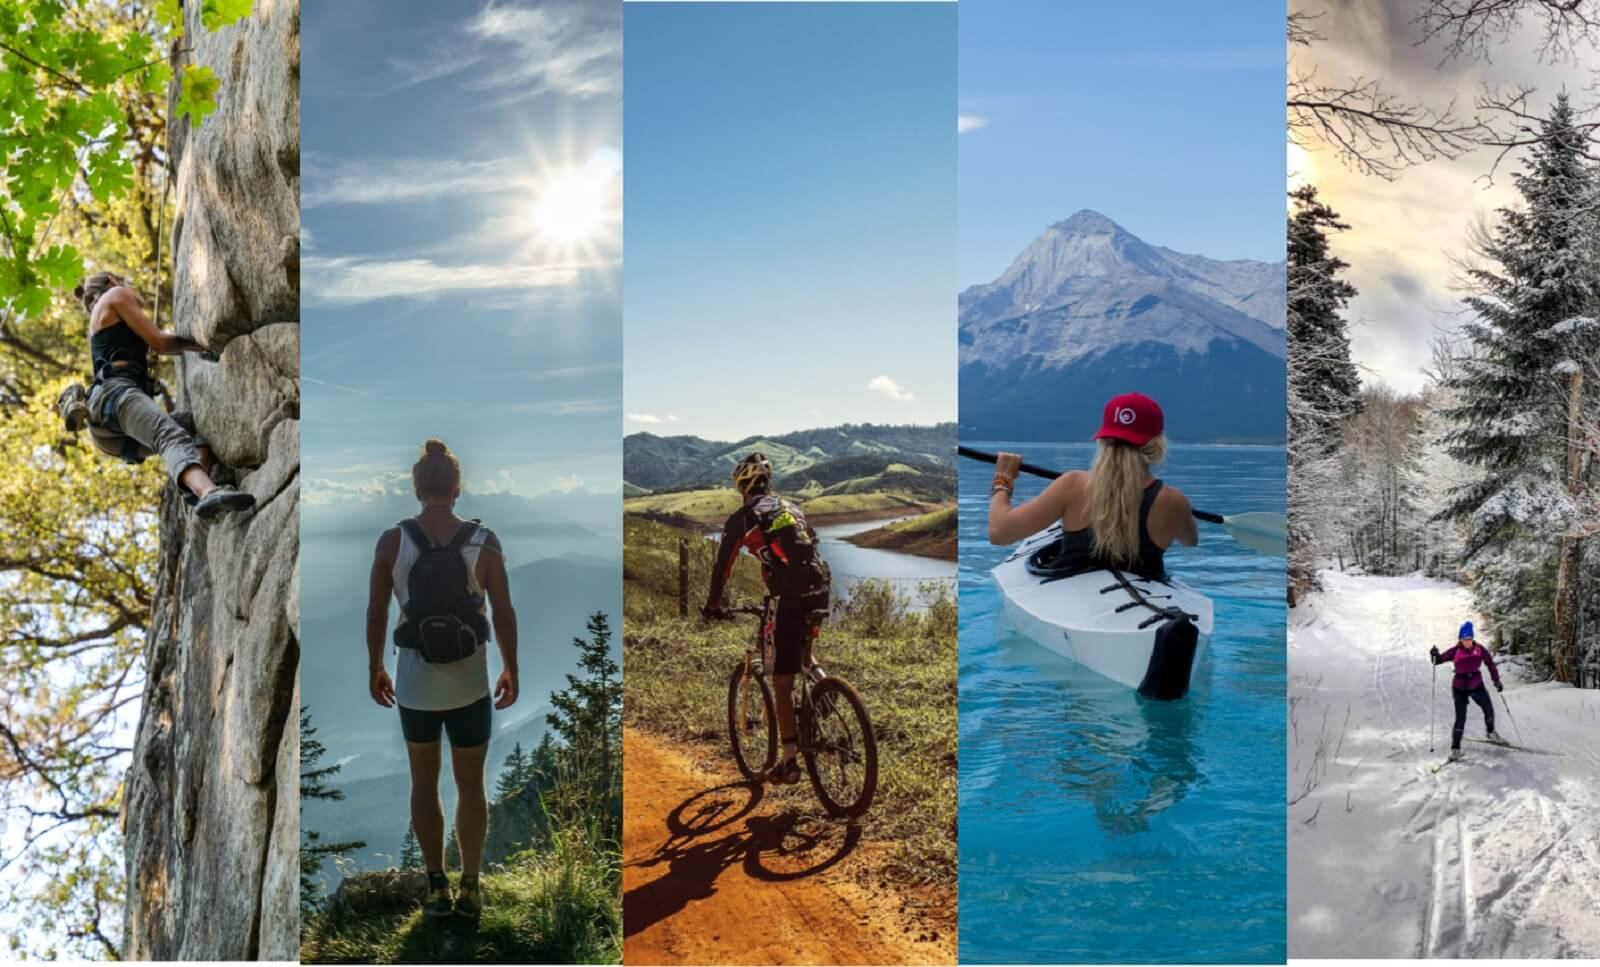 5 lifstyle photos that feature rock climbing hiking cycling kayaking cross country skiing